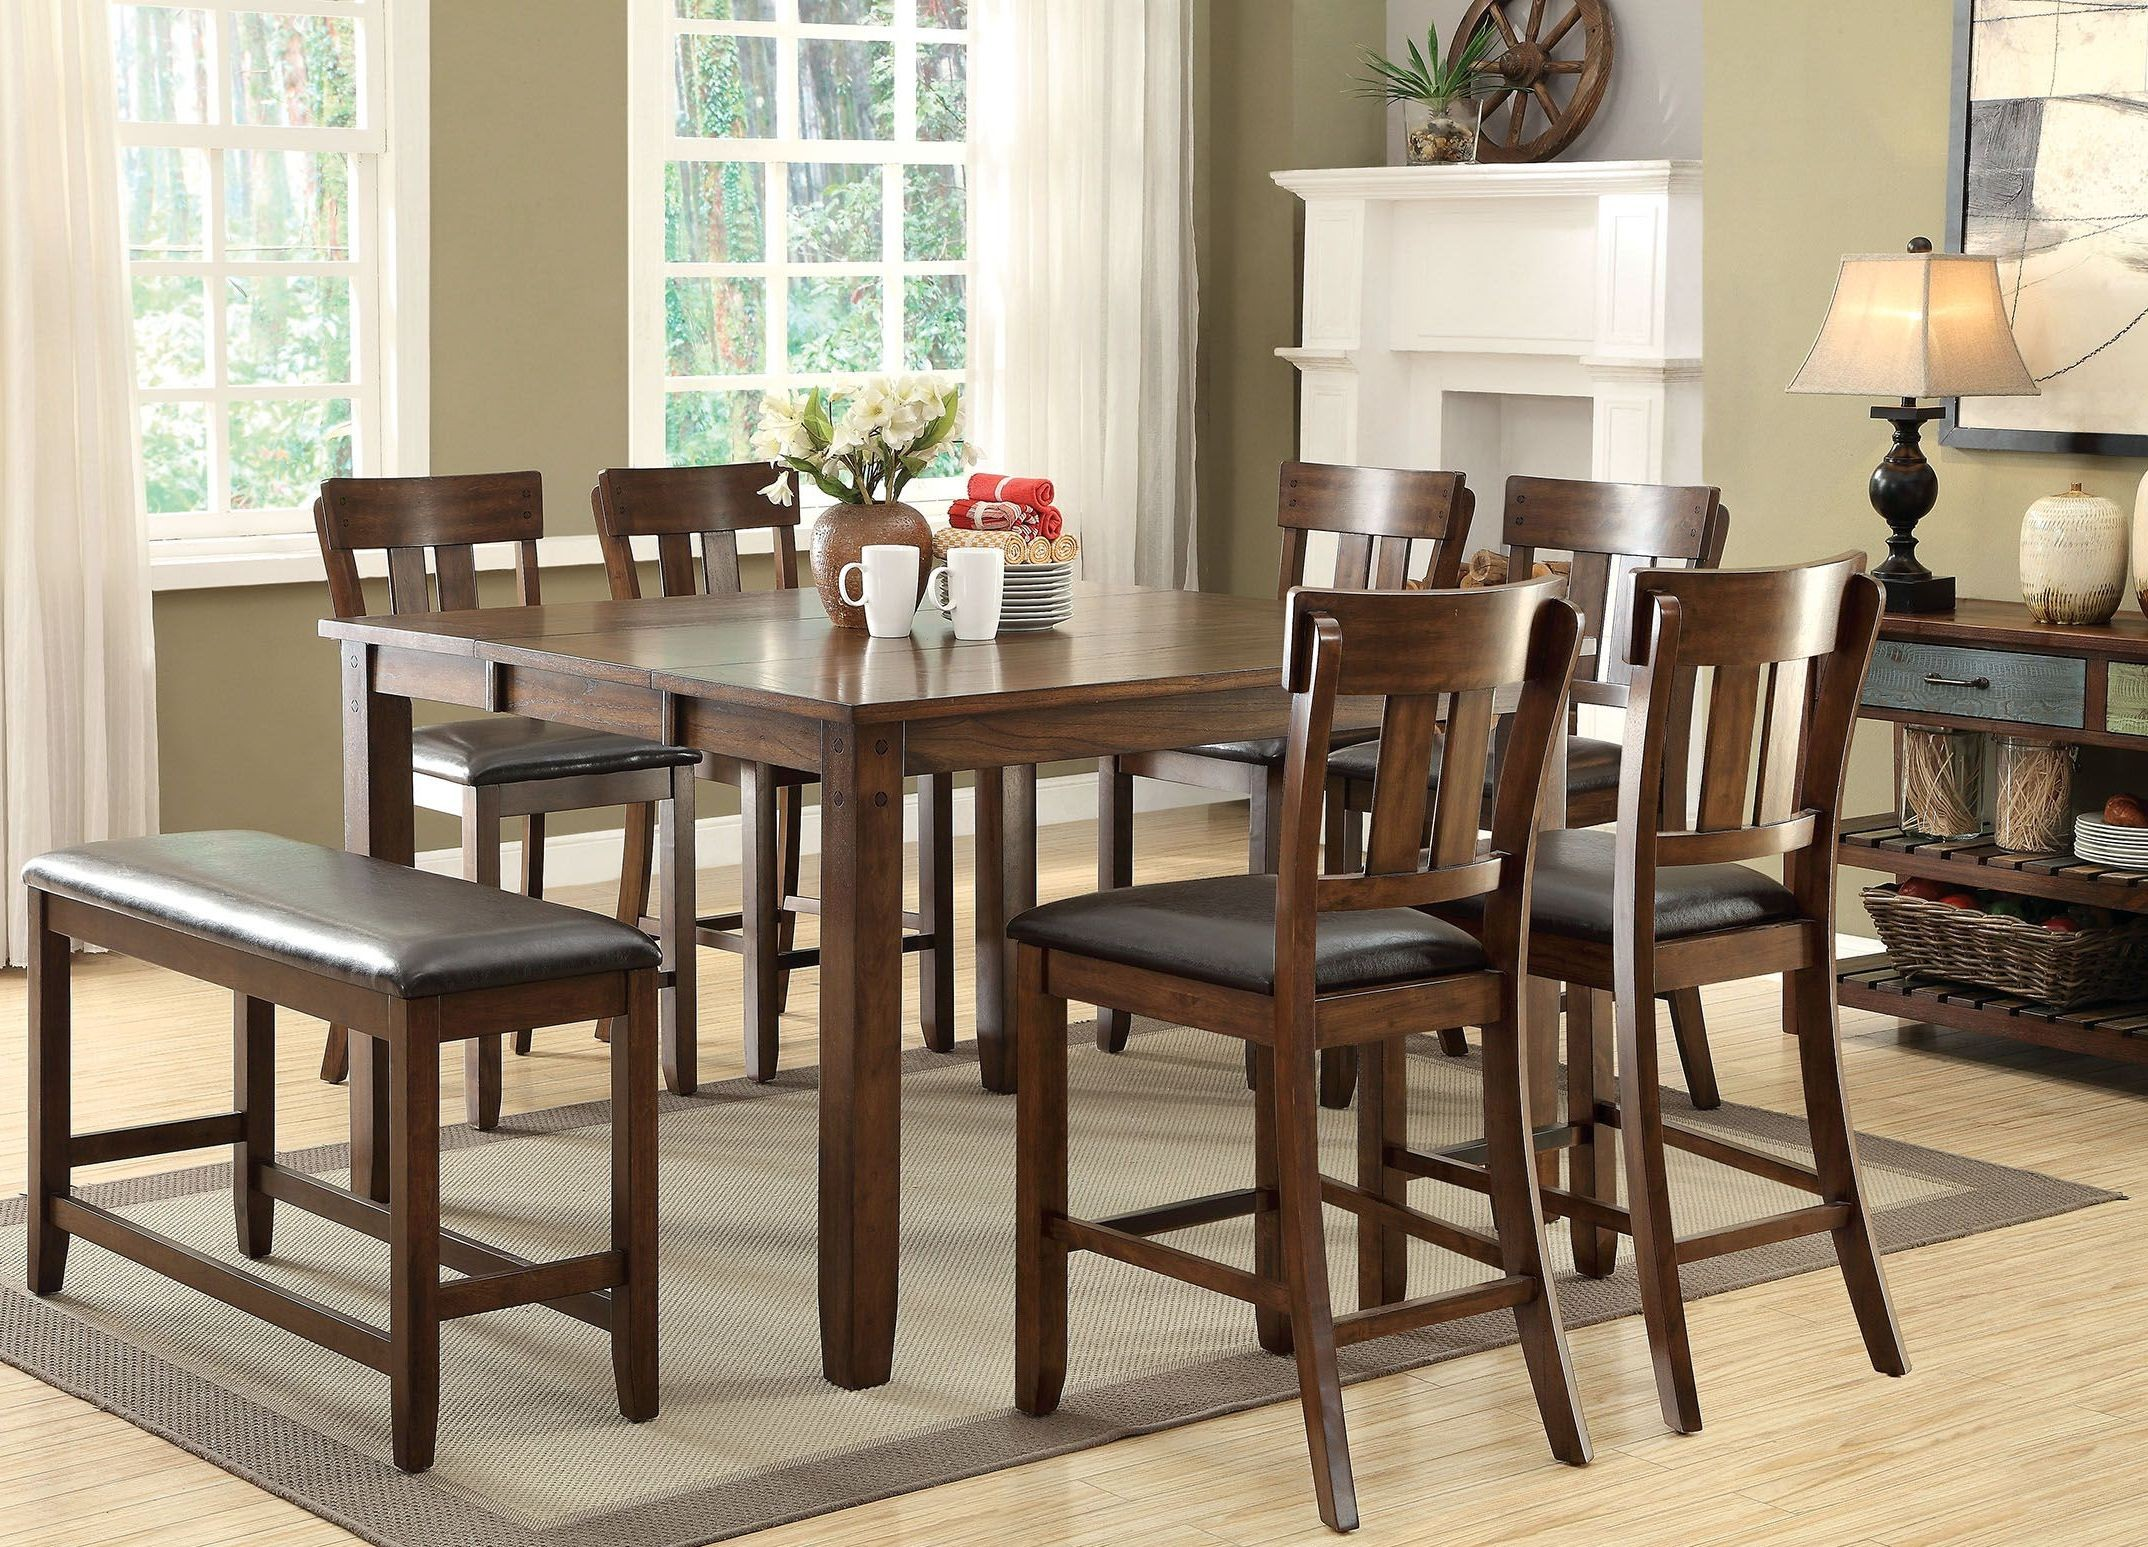 Dining Table Height Cm Brockton Ii Rustic Oak Extendable Counter Height Dining